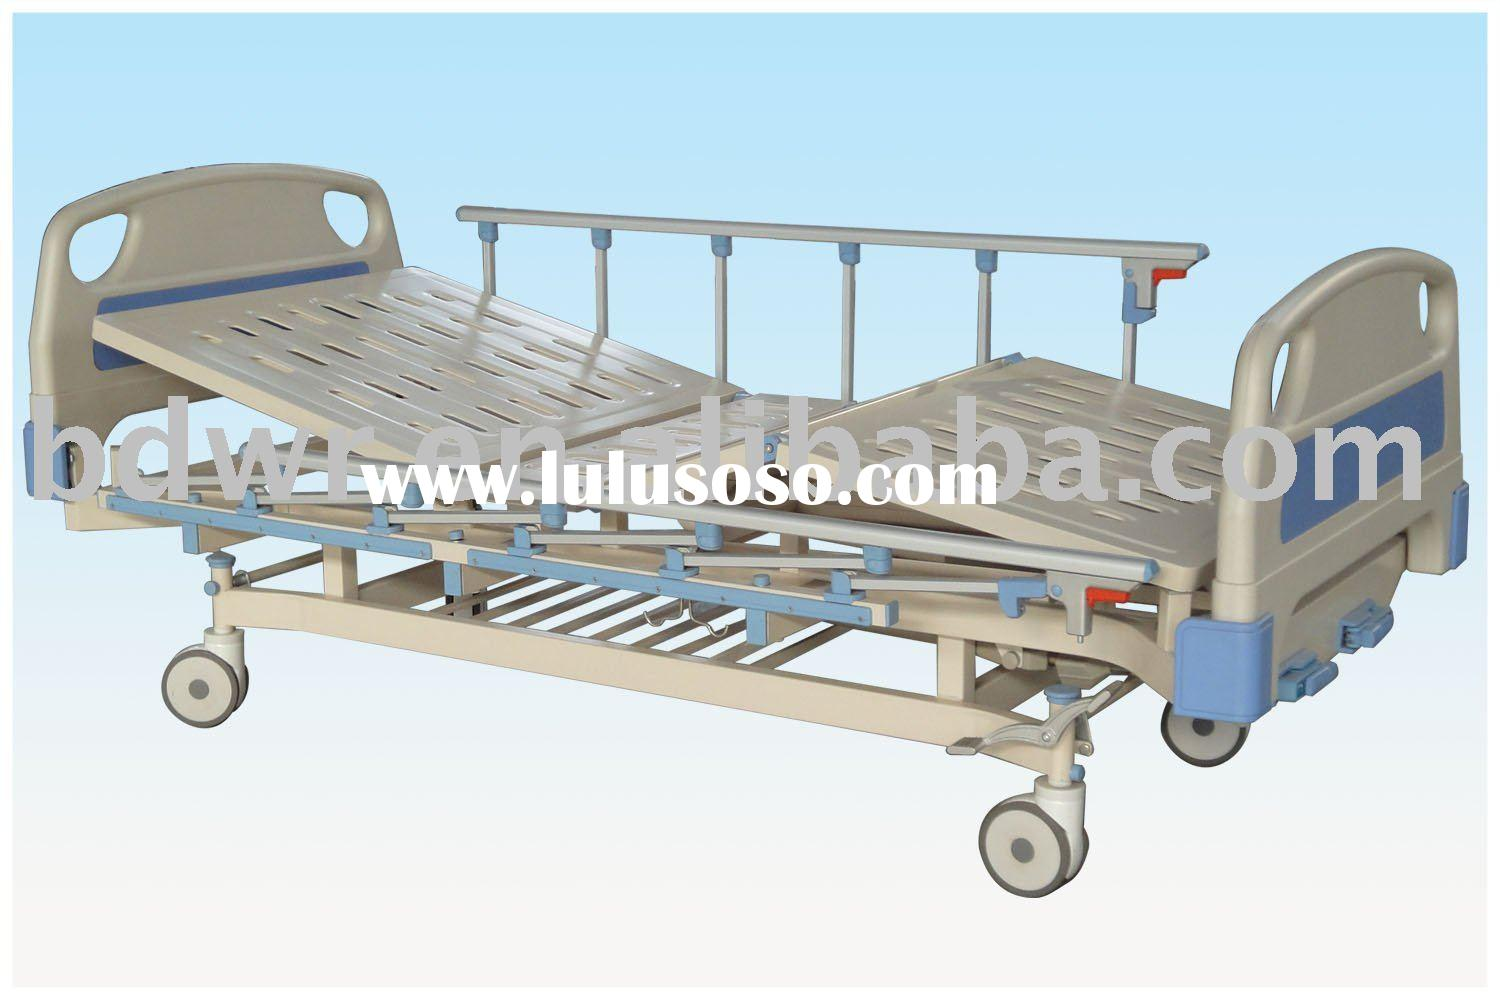 Movable full-fowler hospital bed with ABS head/foot board